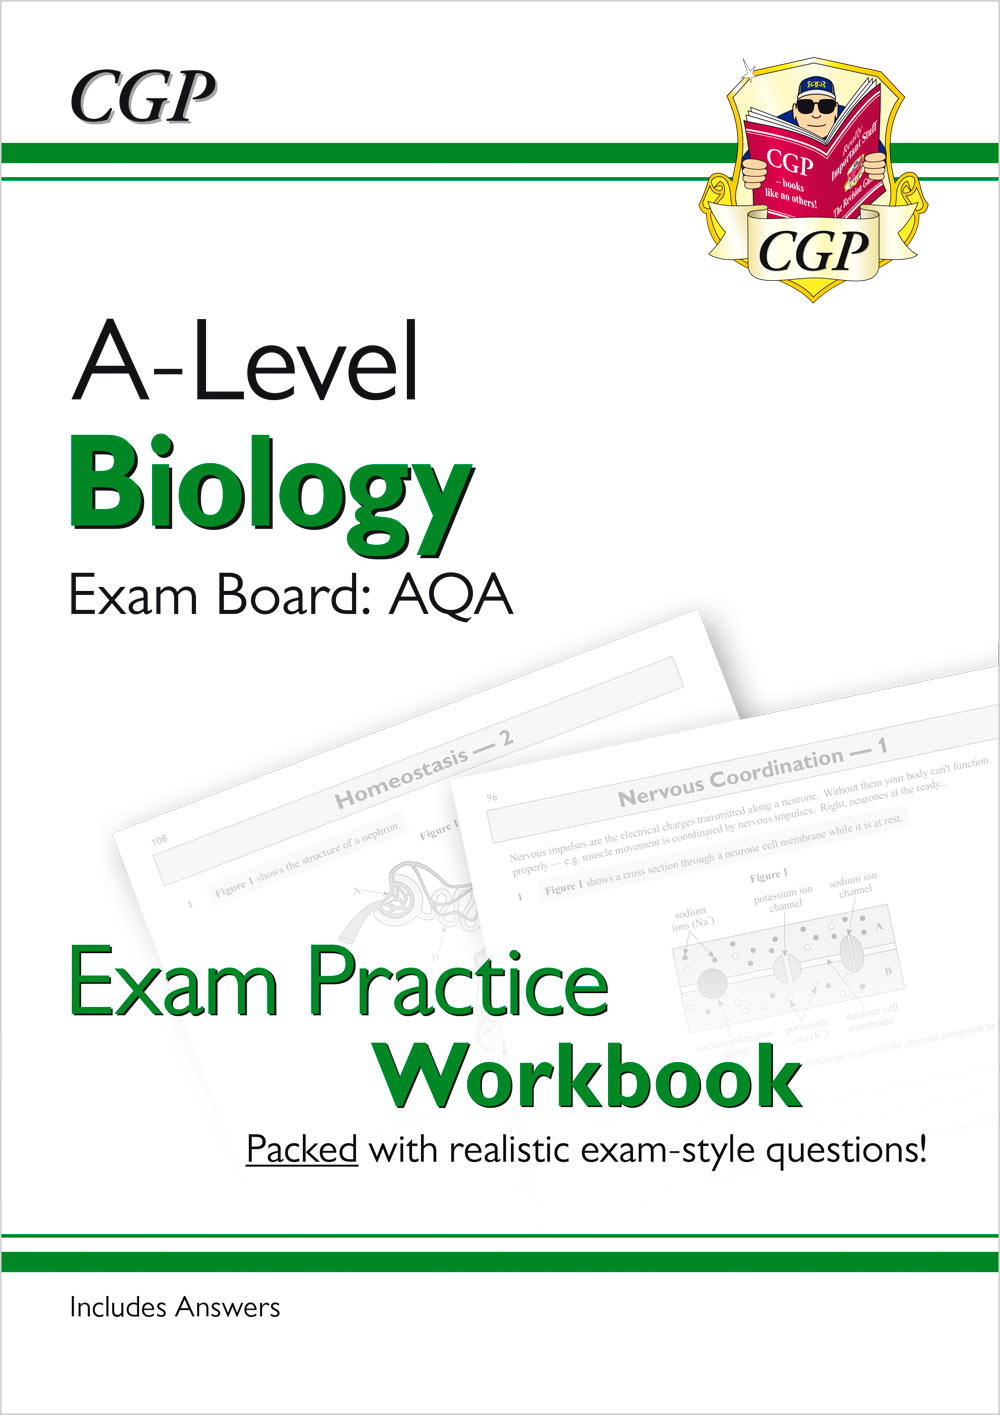 BAQ71 - A-Level Biology: AQA Year 1 & 2 Exam Practice Workbook - includes Answers